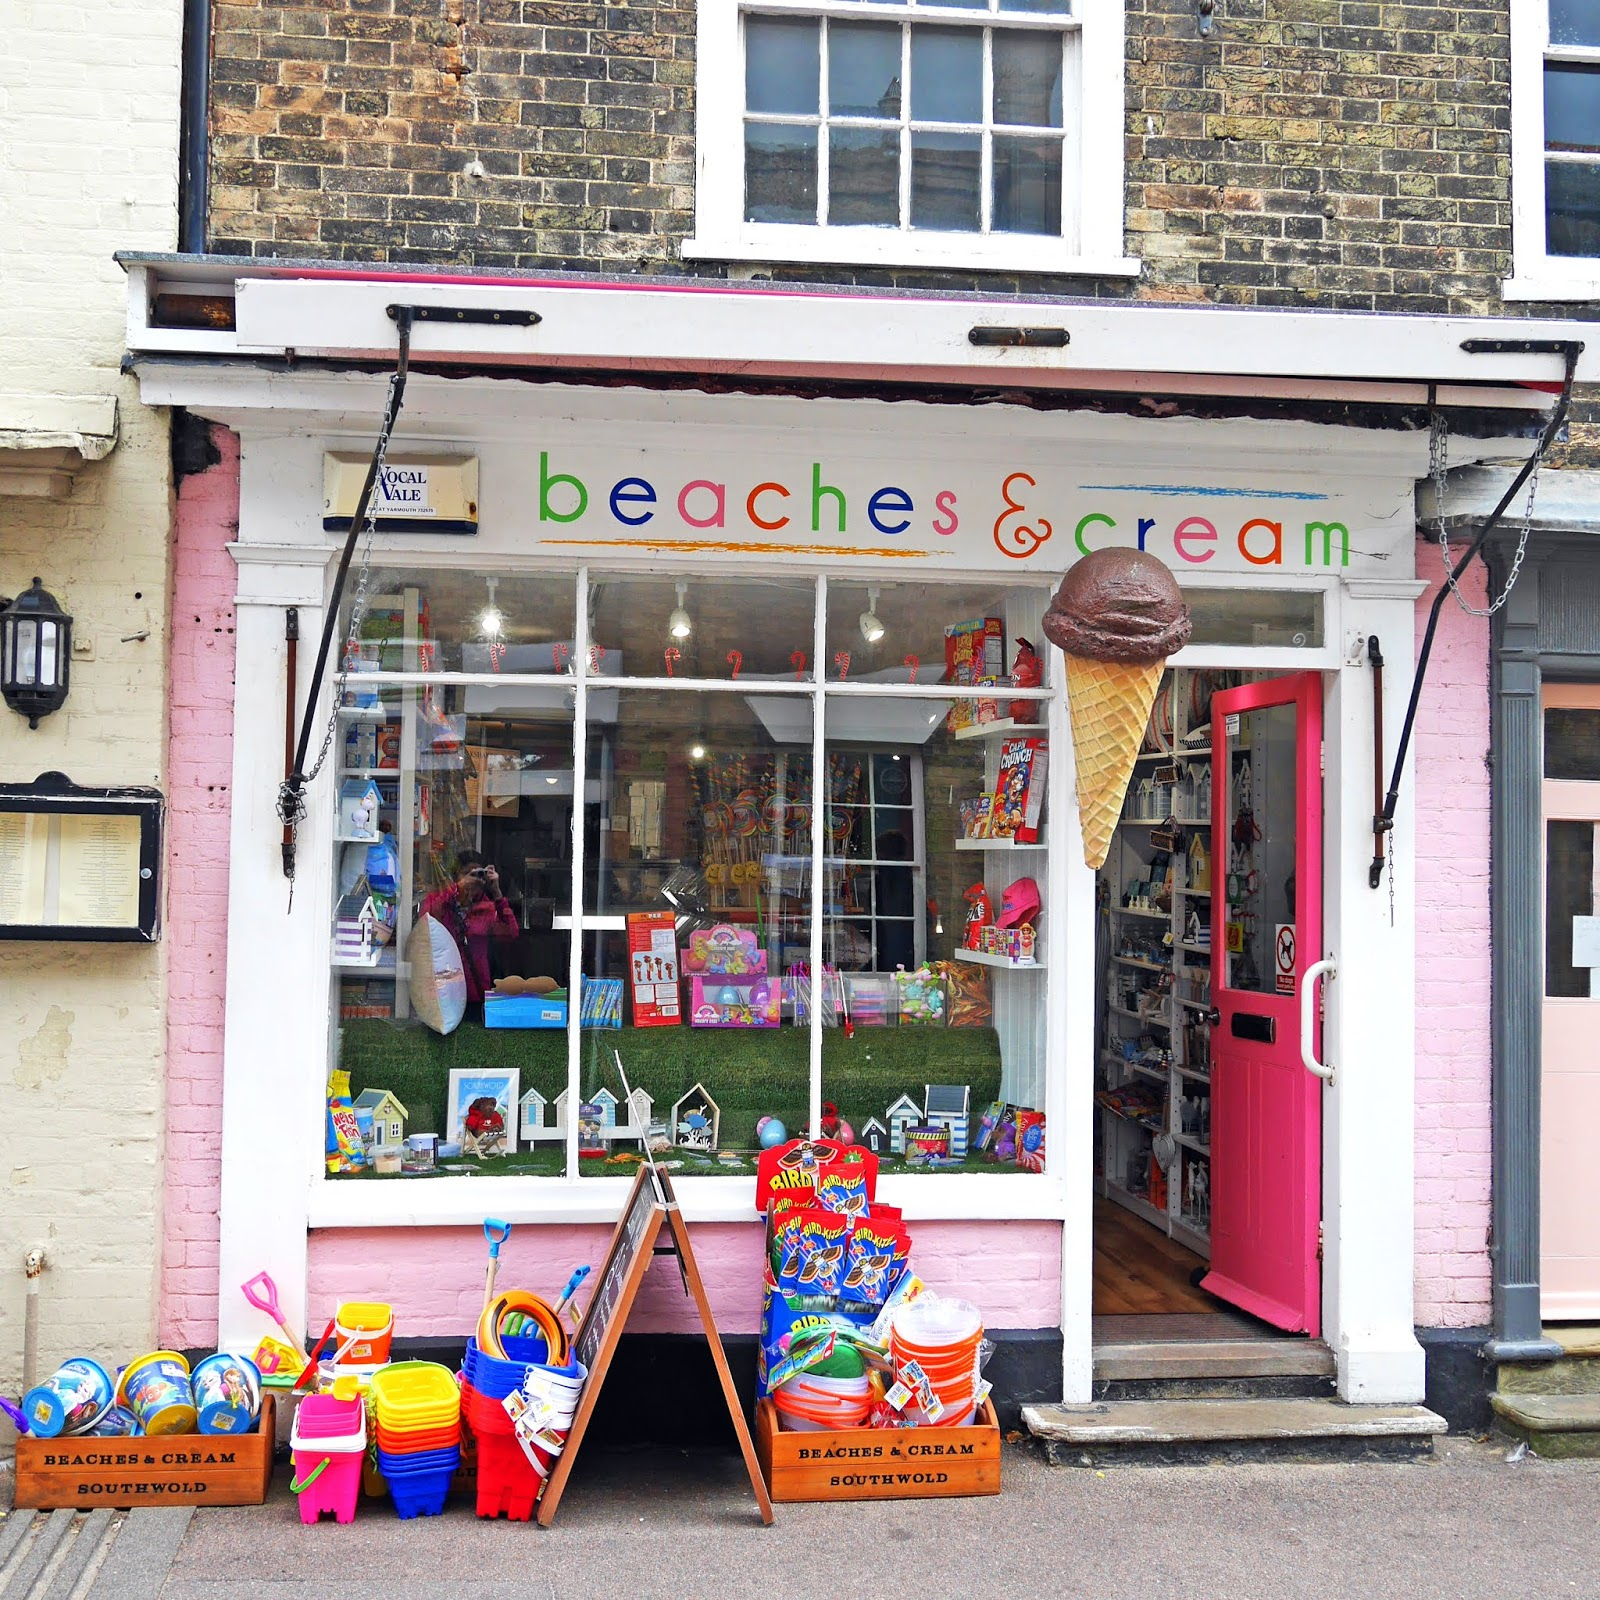 Beaches & Cream shop in Southwold town centre